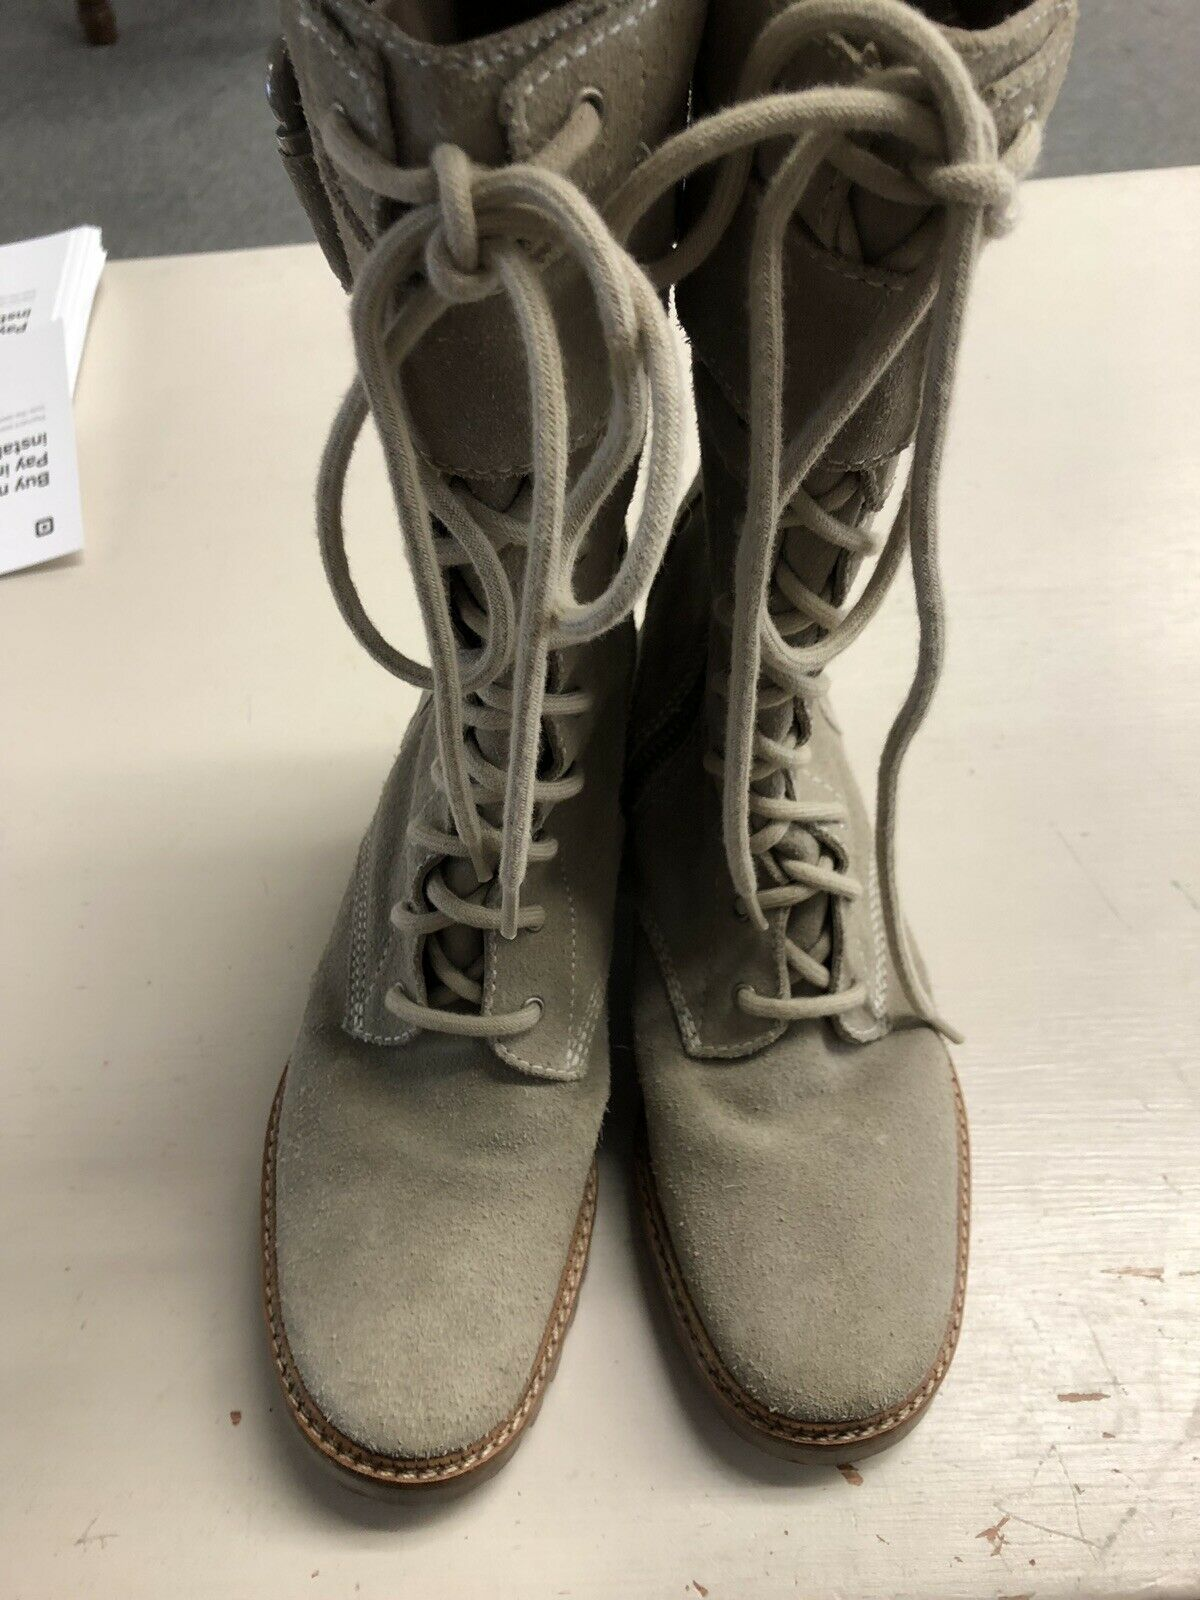 7 For All Mankind Gingerly Boots EUC Size 6M 6M 6M Clay No Box ce0db6